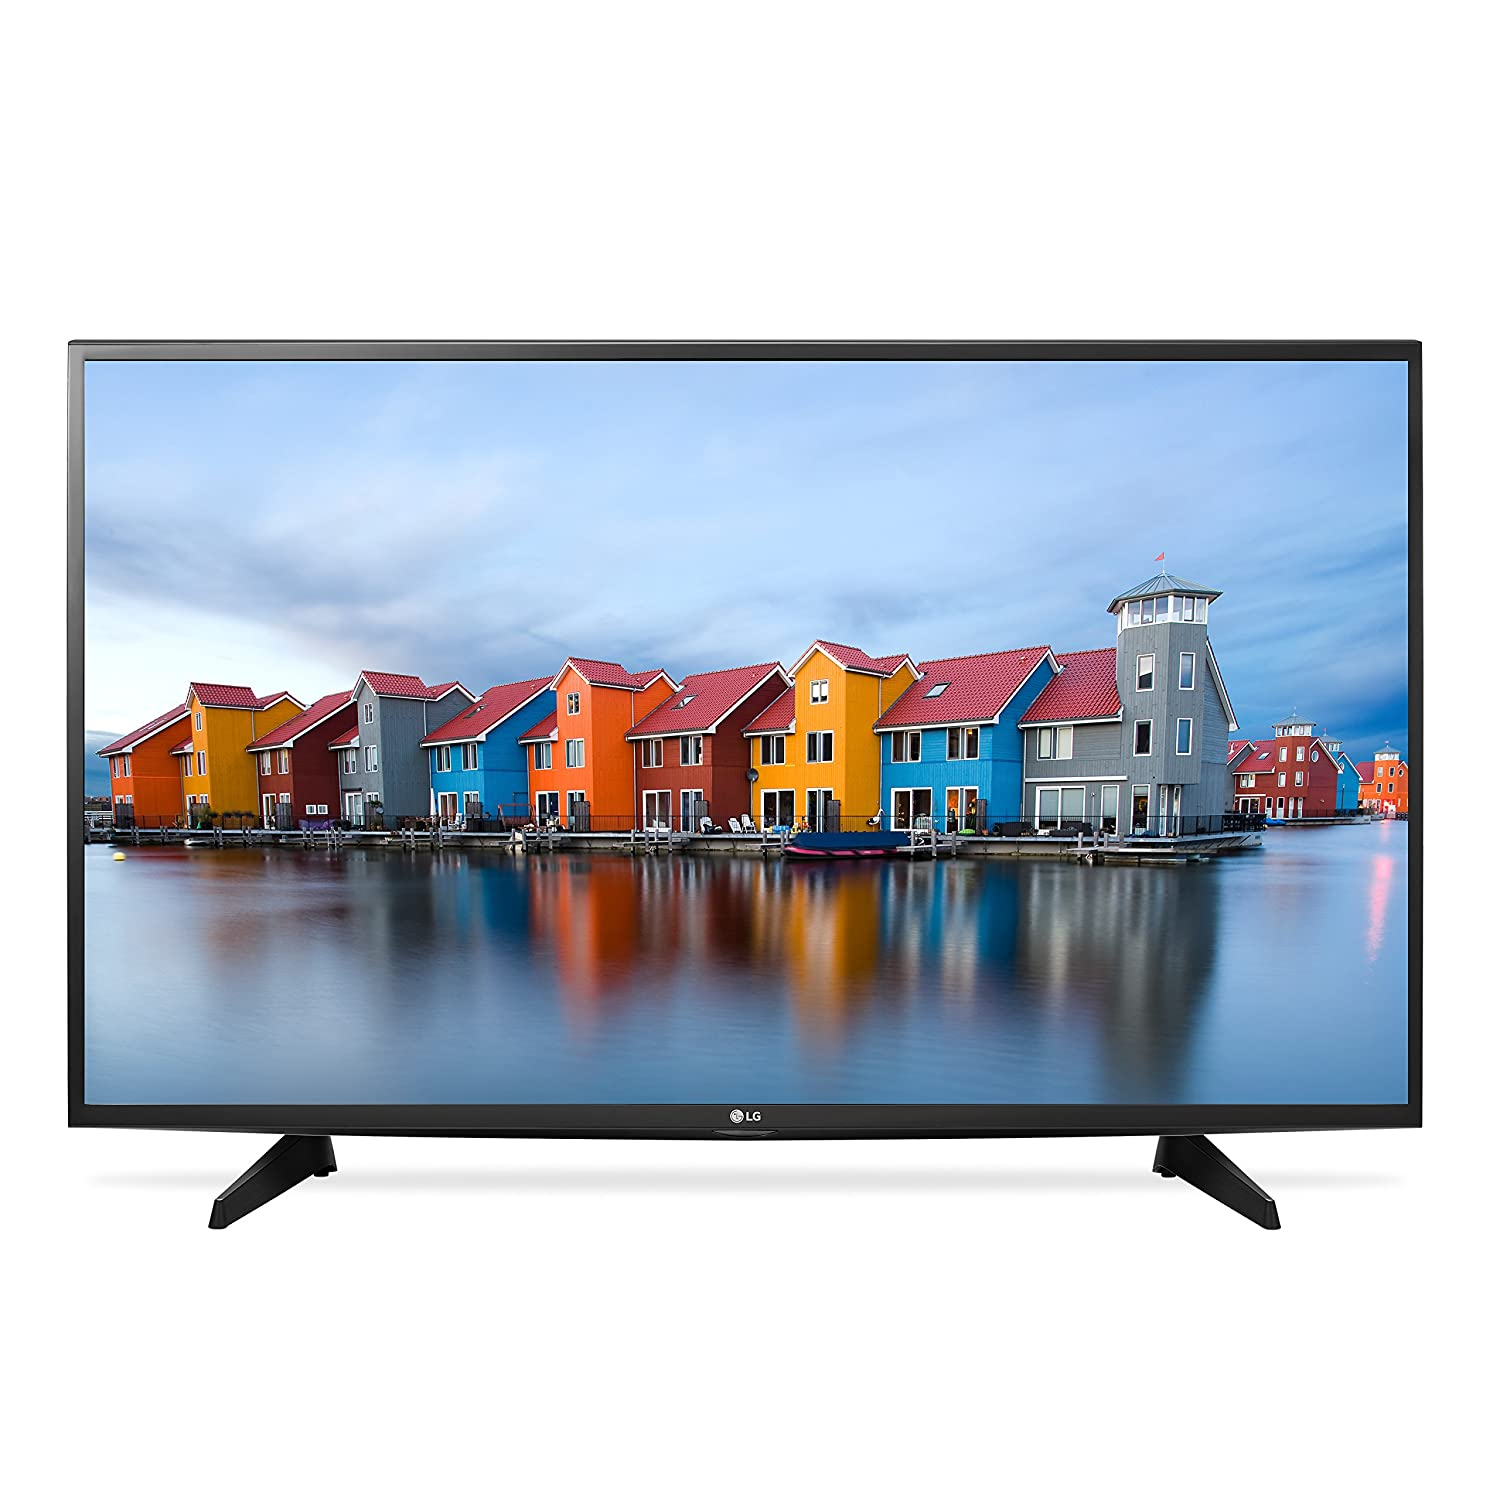 40 Inch Smart Tv Deals Vizio E401i A2 40 Inch 1080p Led Smart Hdtv Without Base And Neck